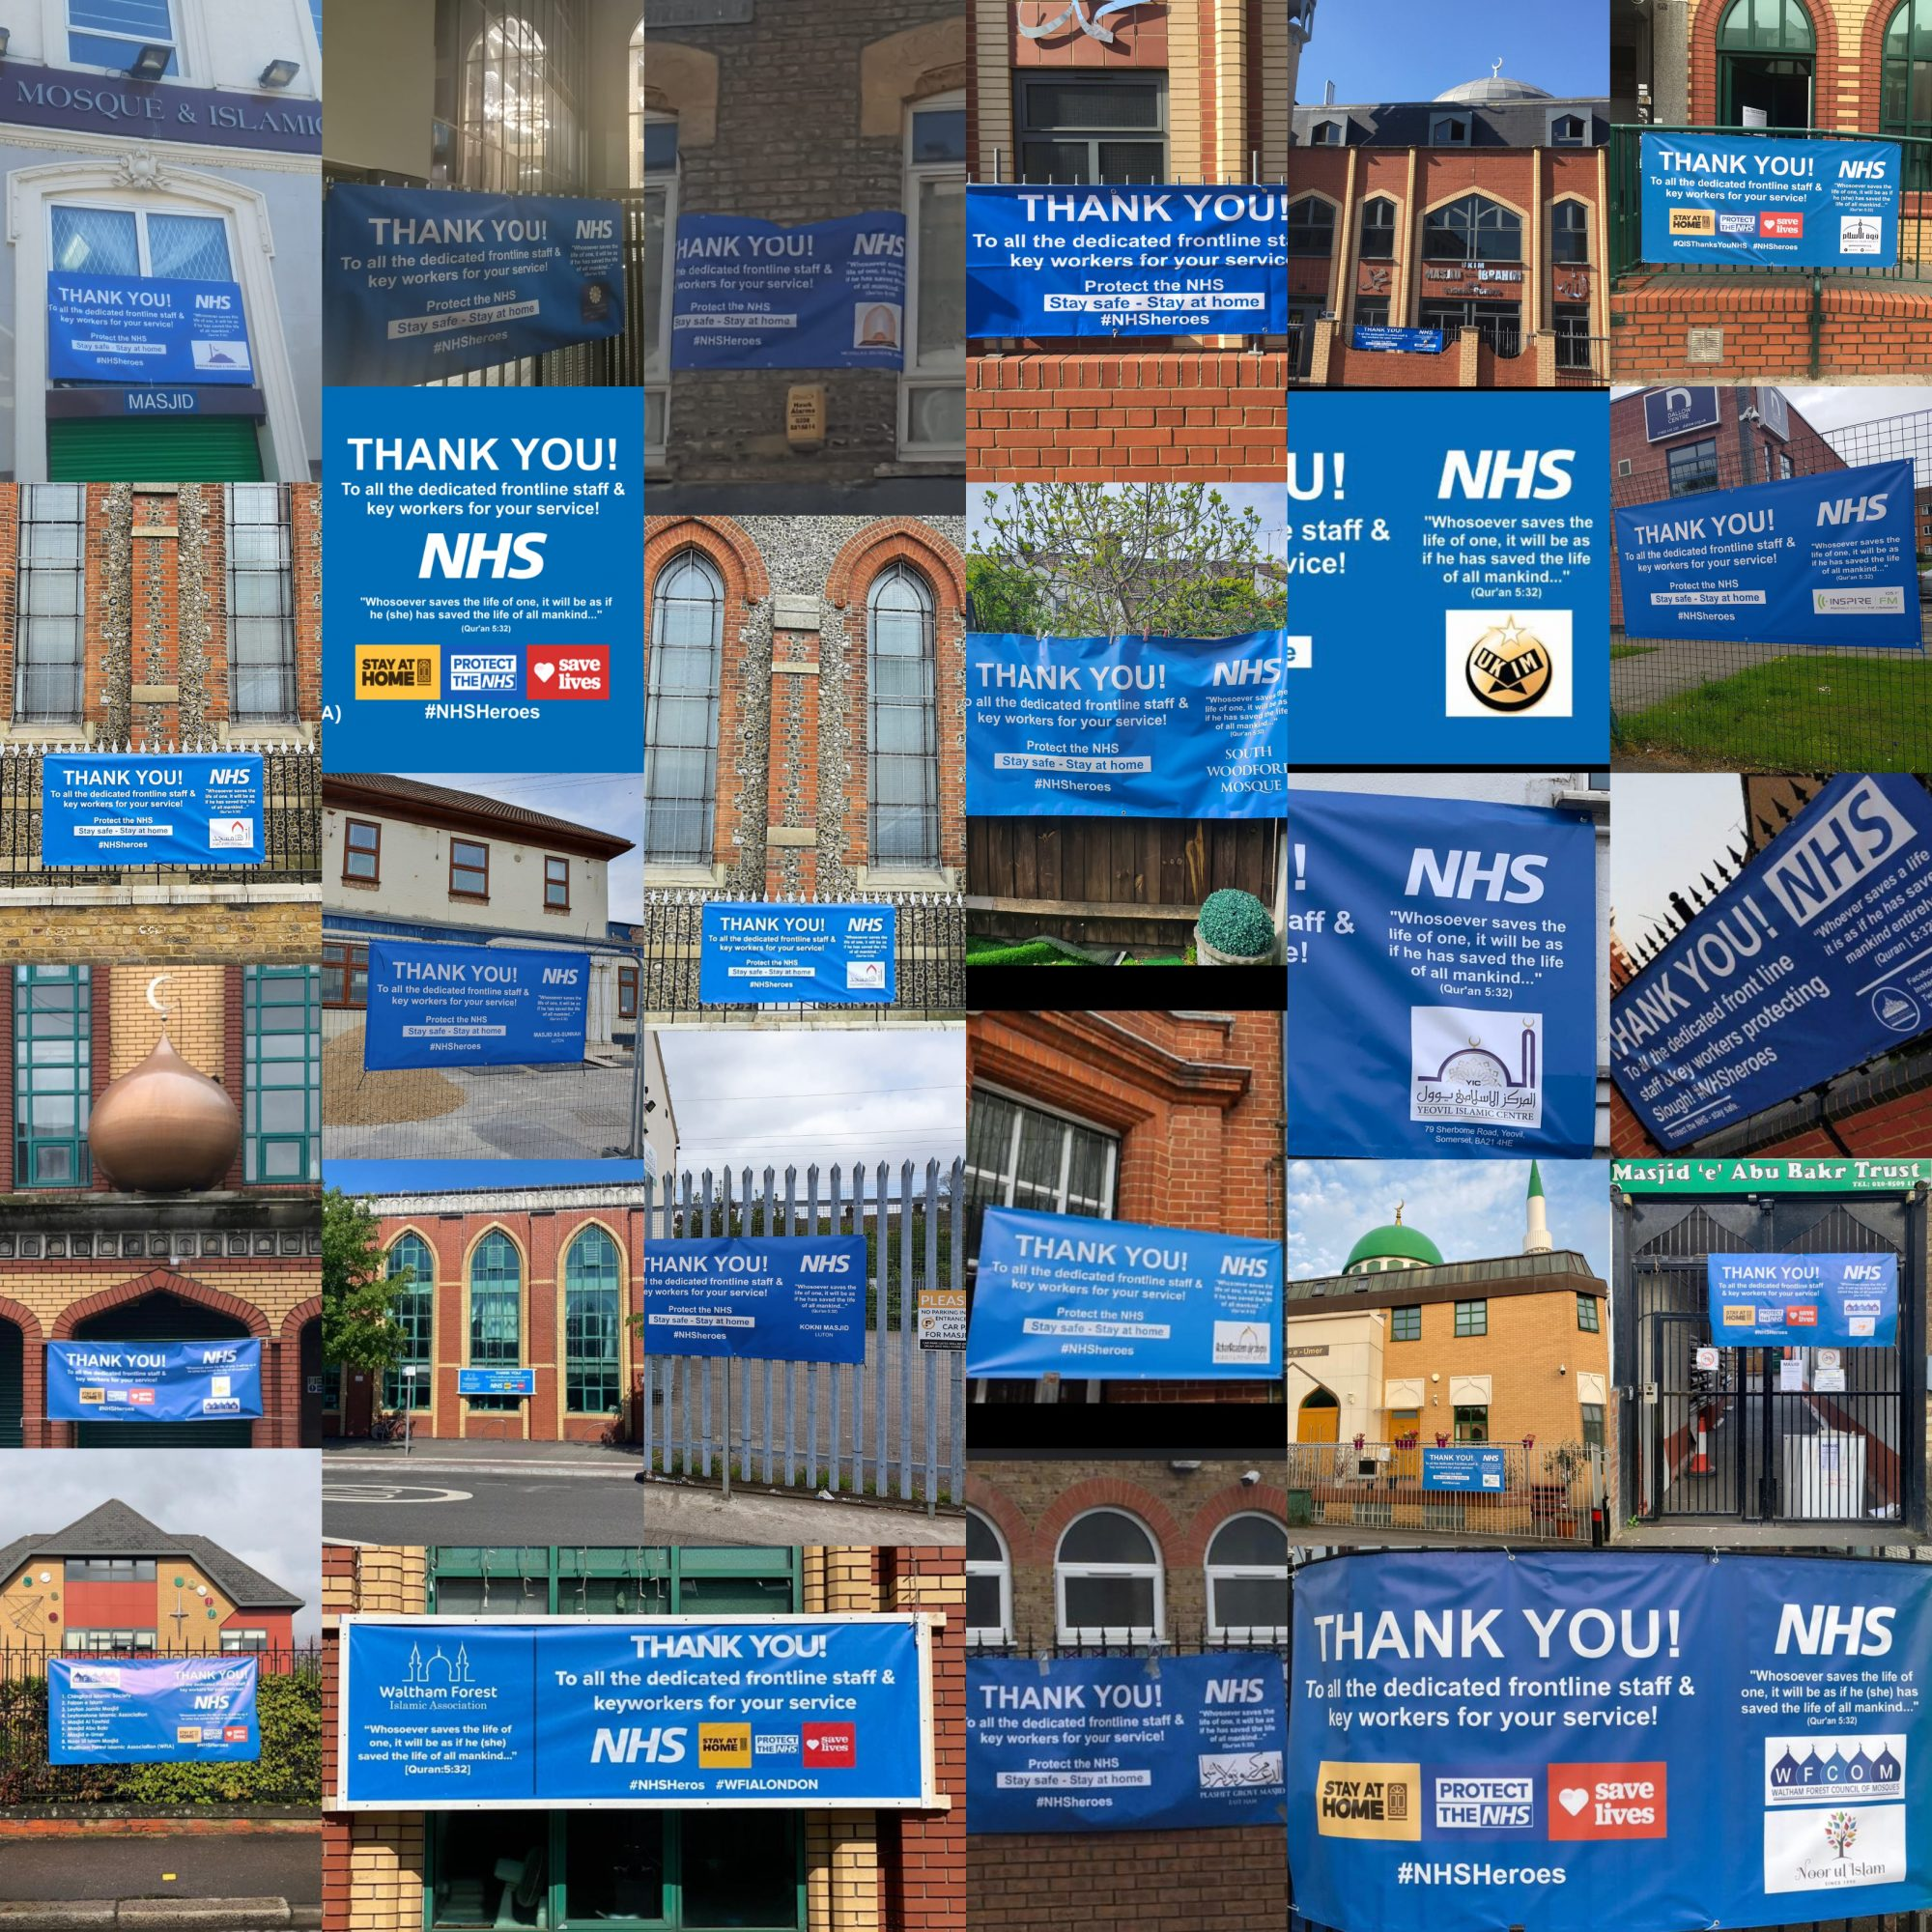 London Mosques Say Thank You NHS!